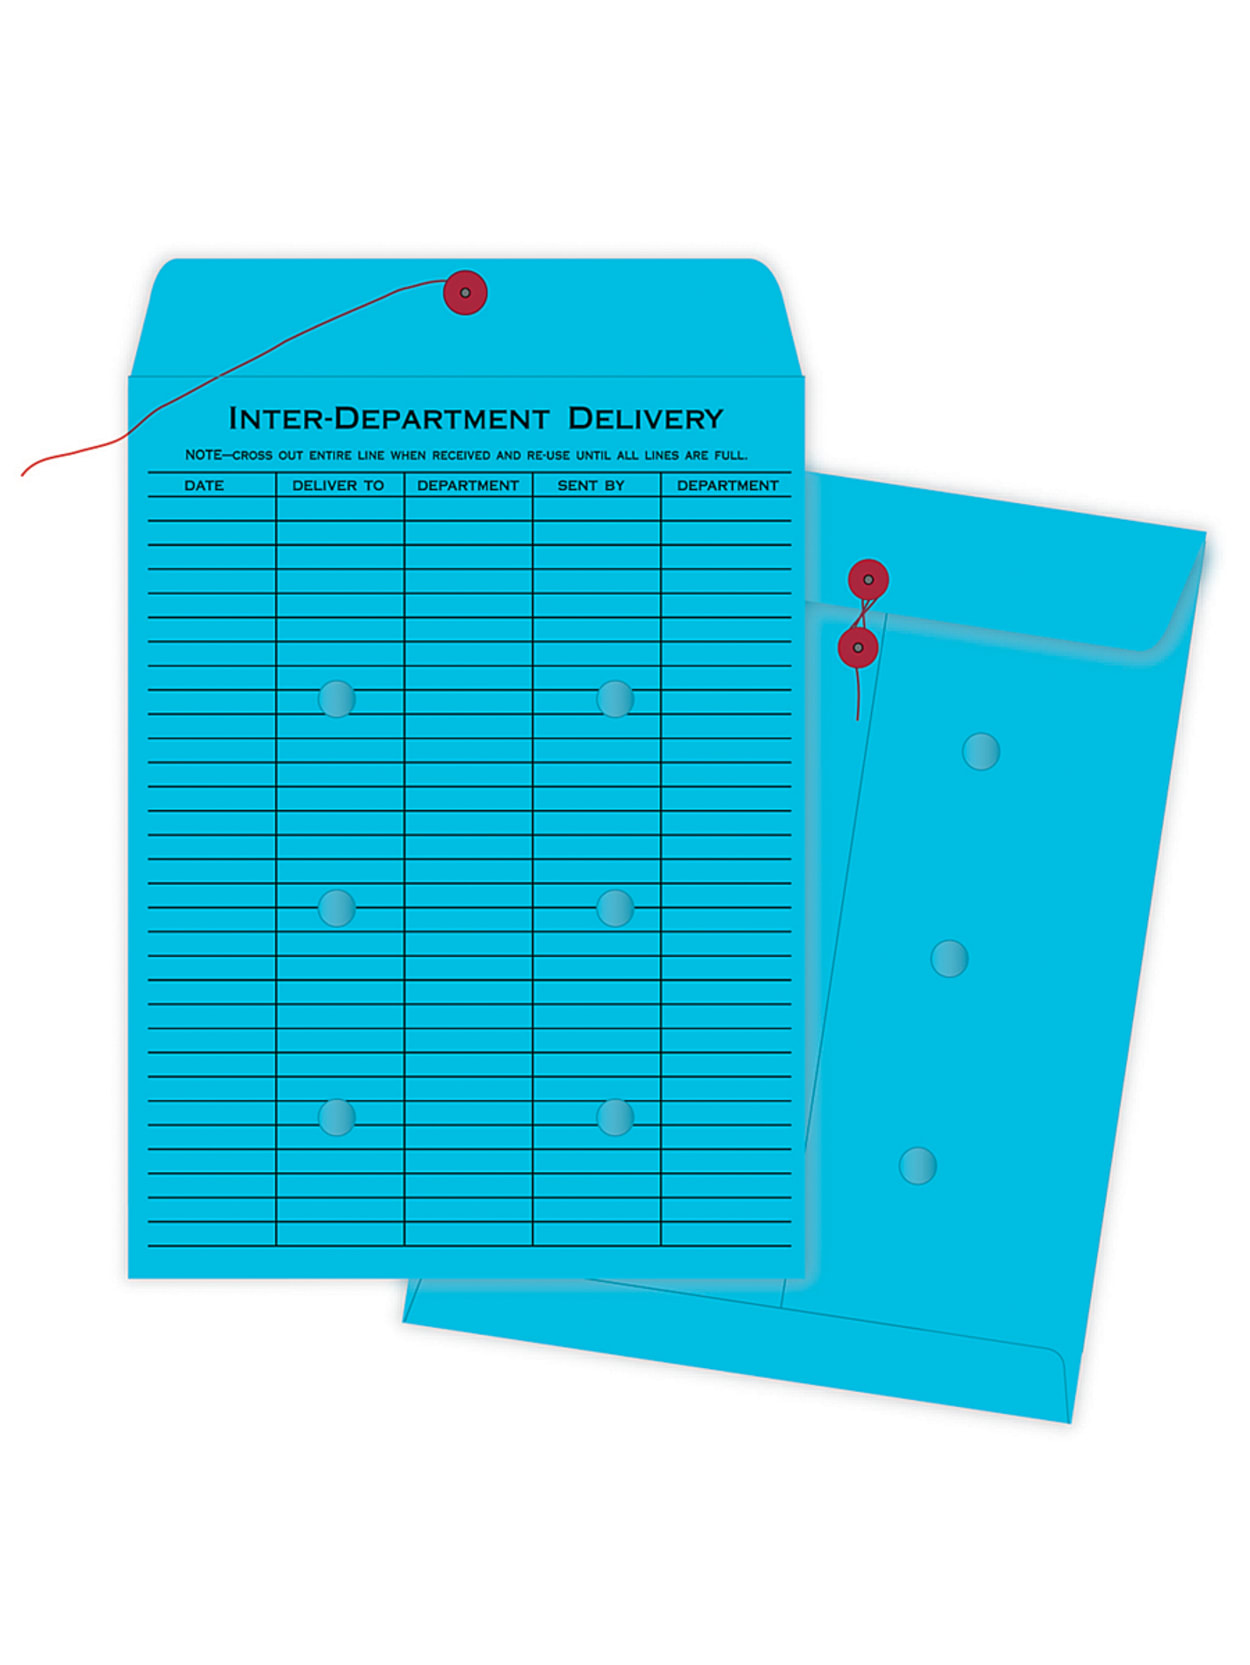 Quality Park Interdepartment String And Button Closure Envelopes 10 X 13 1 Sided Narrow Rule Blue Box Of 100 Office Depot